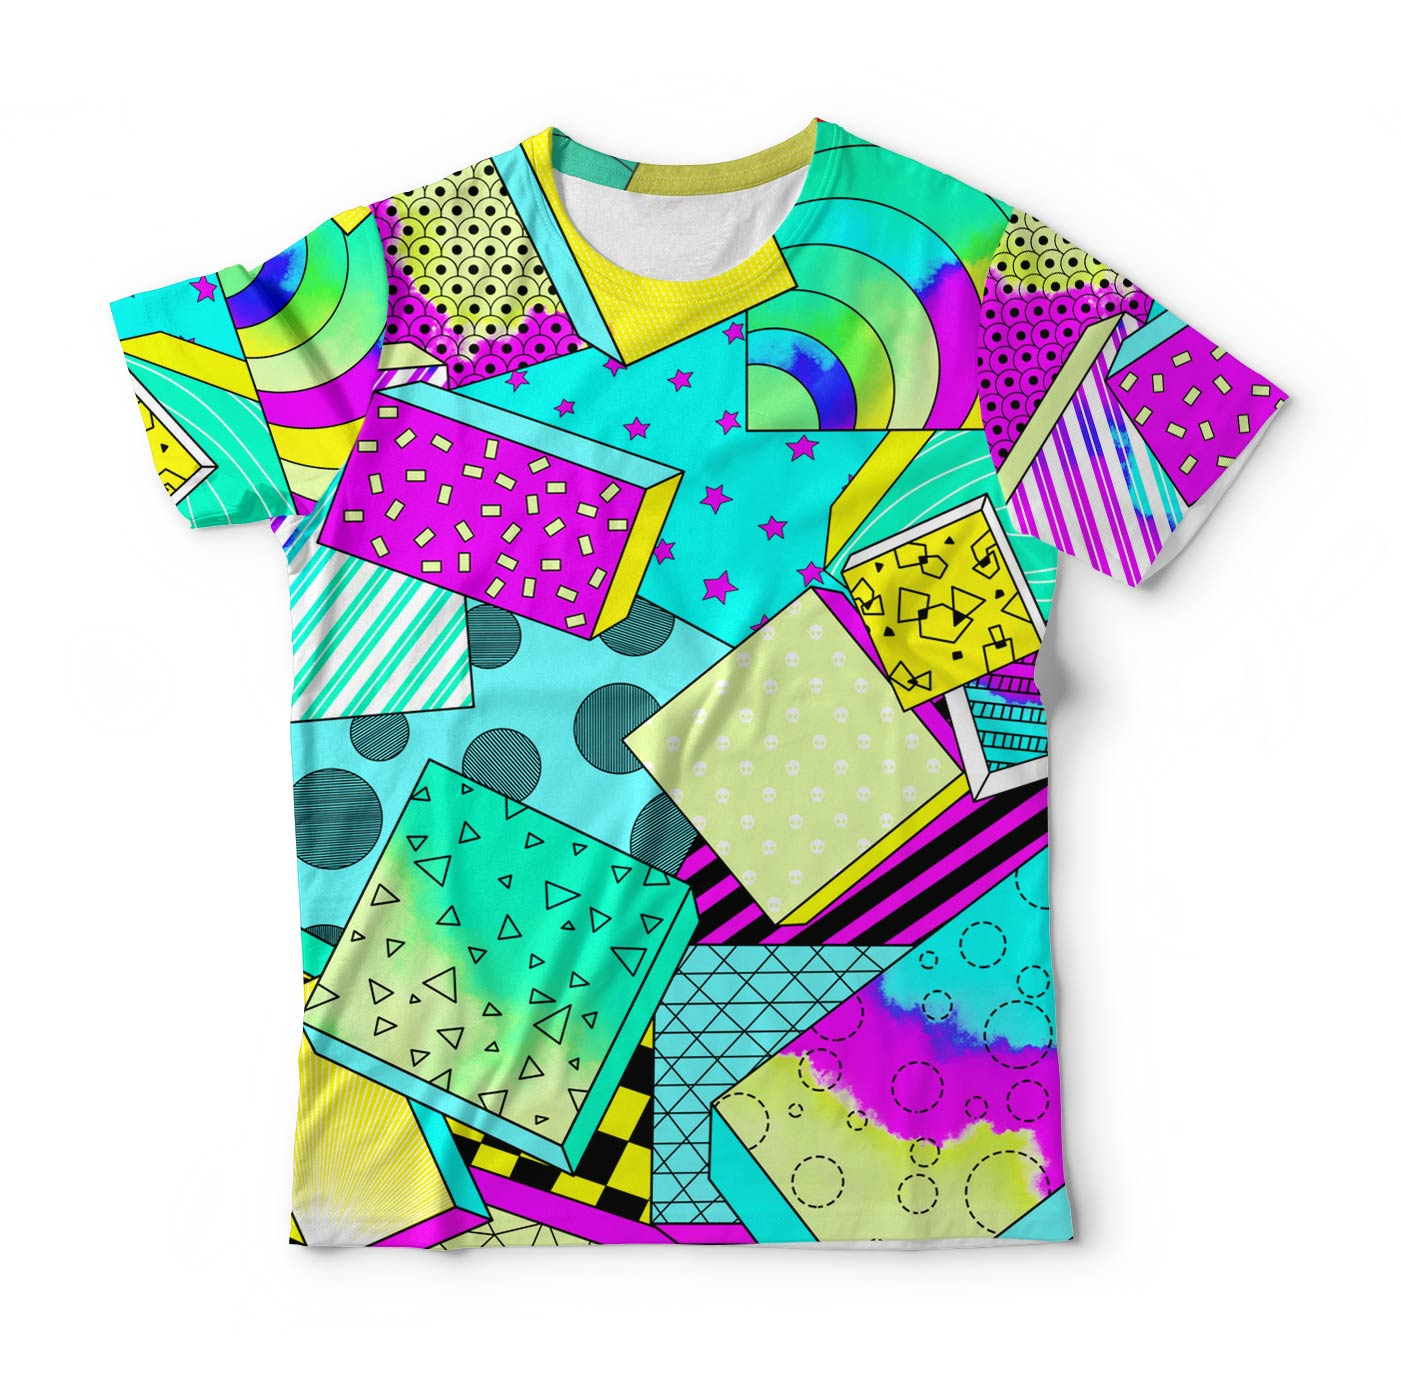 Dancing Cubes T-Shirt